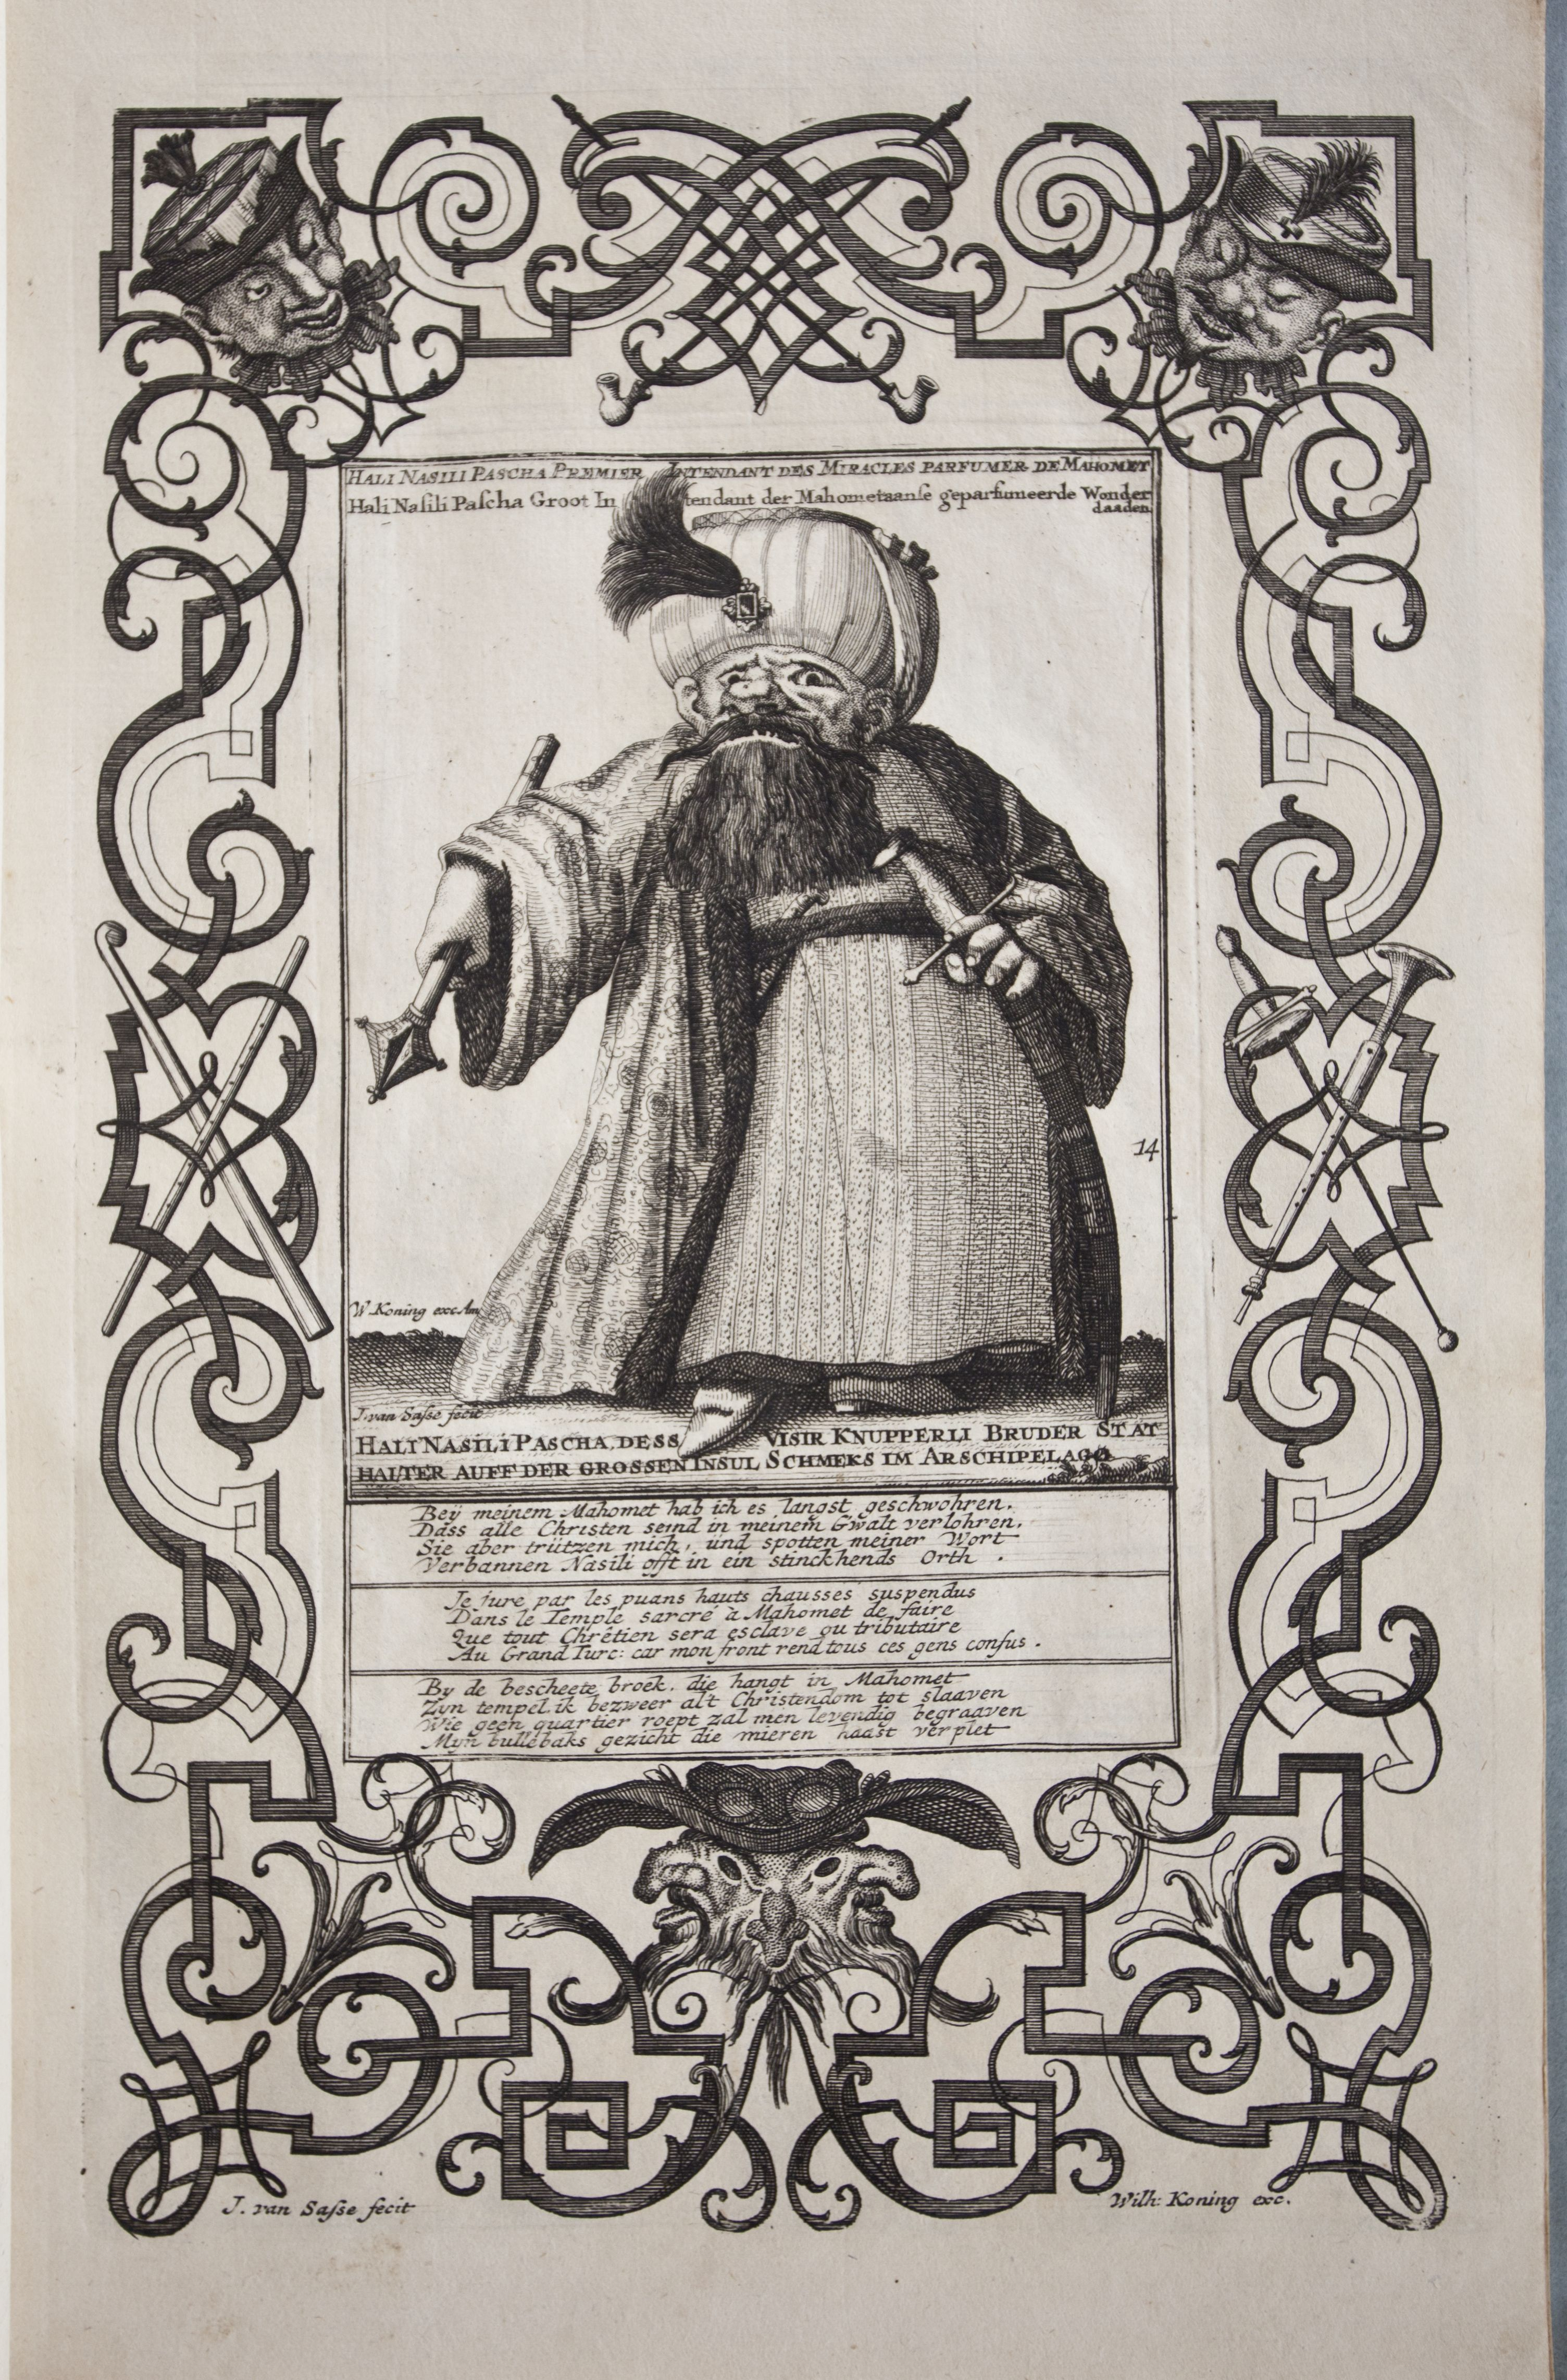 satire in the eighteenth century essay The restoration and eighteenth century: an age of satire this class will survey most of the restoration and eighteenth-century texts on the ma on papers.